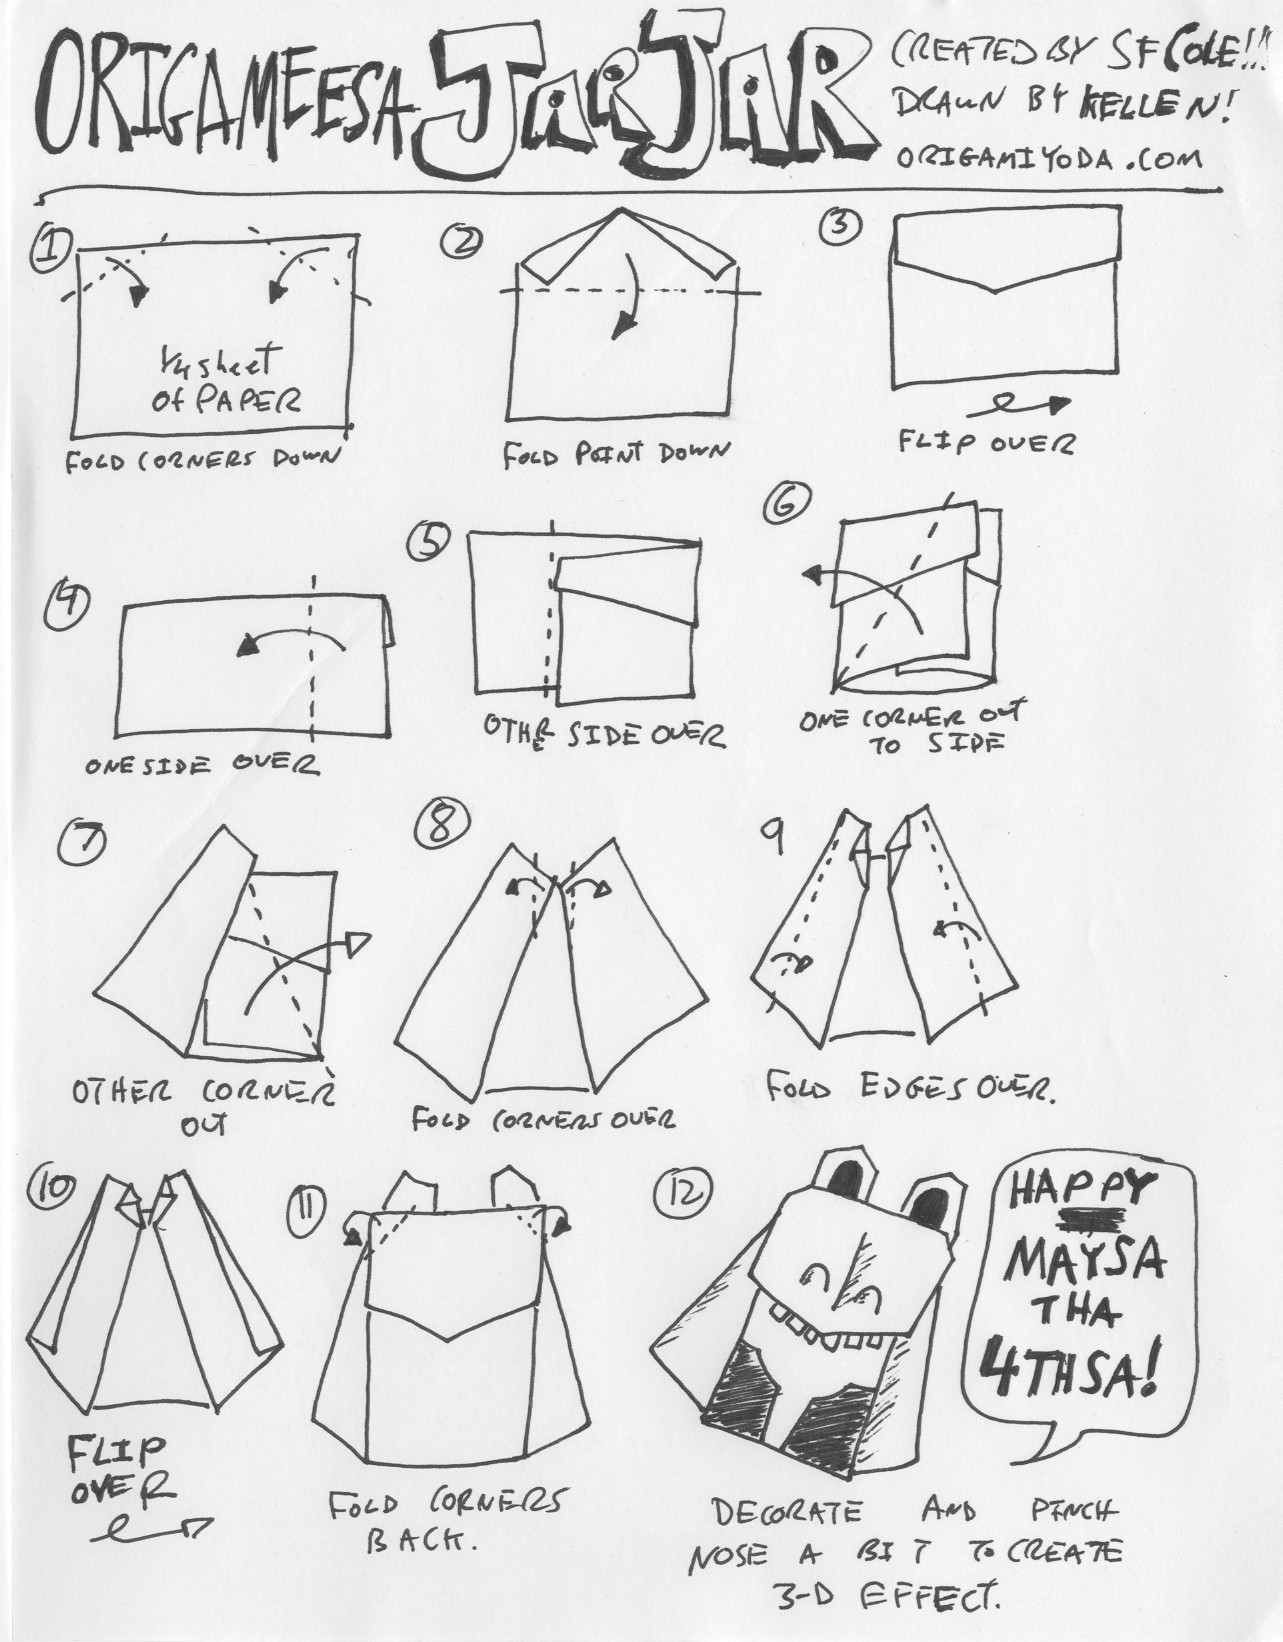 Star wars origami a list of online diagrams for folding your own jar jar binks jeuxipadfo Gallery